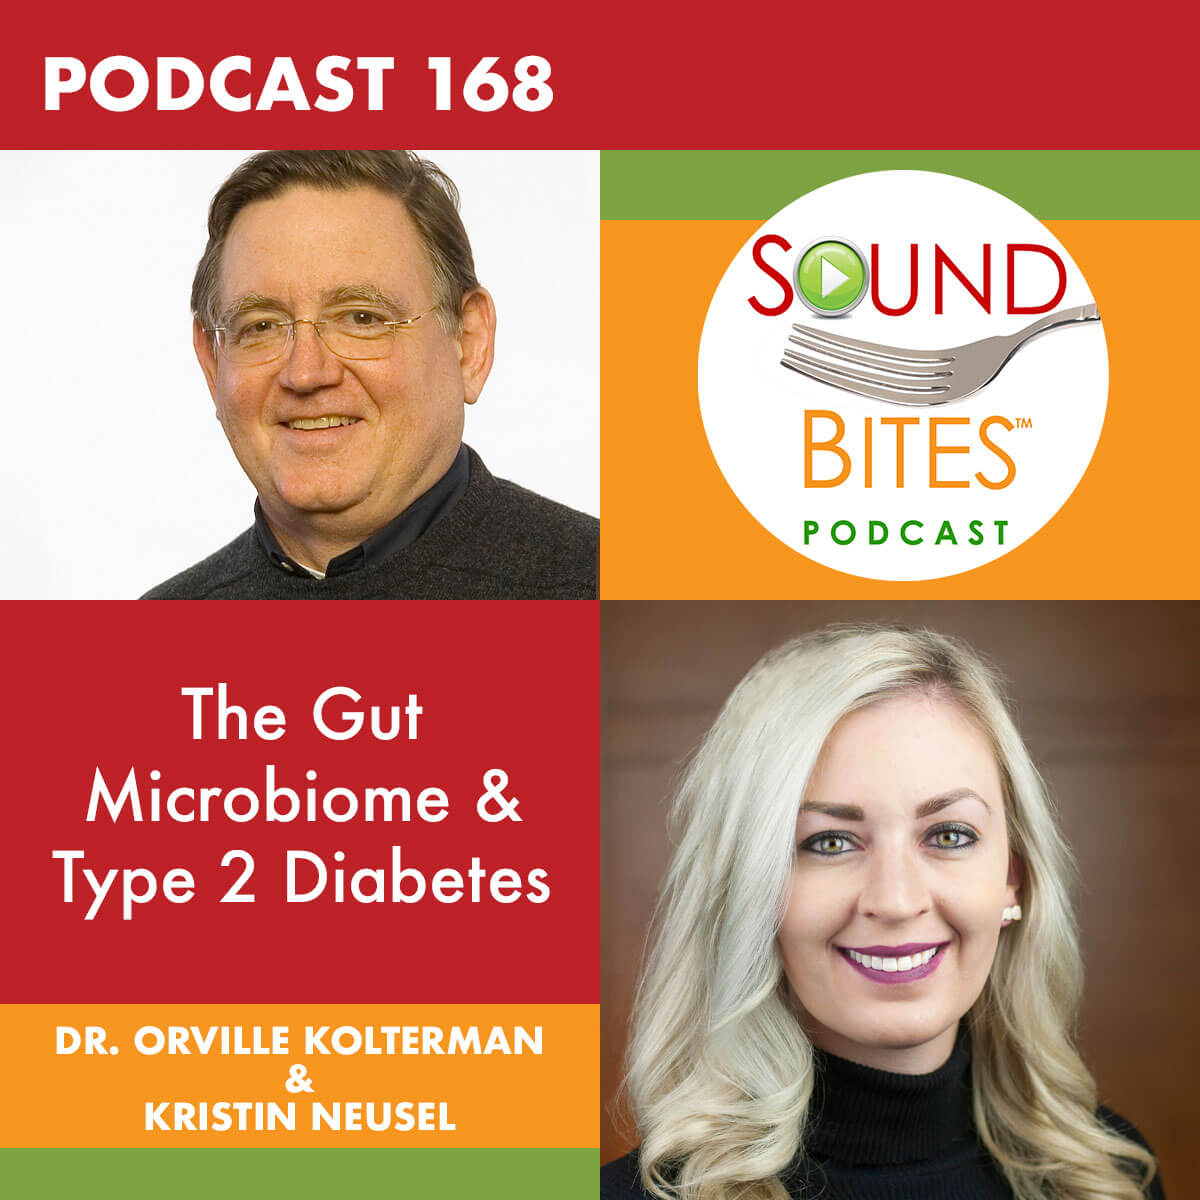 Podcast Episode 168: The Gut Microbiome & Type 2 Diabetes – Dr. Orville Kolterman and Kristin Neusel